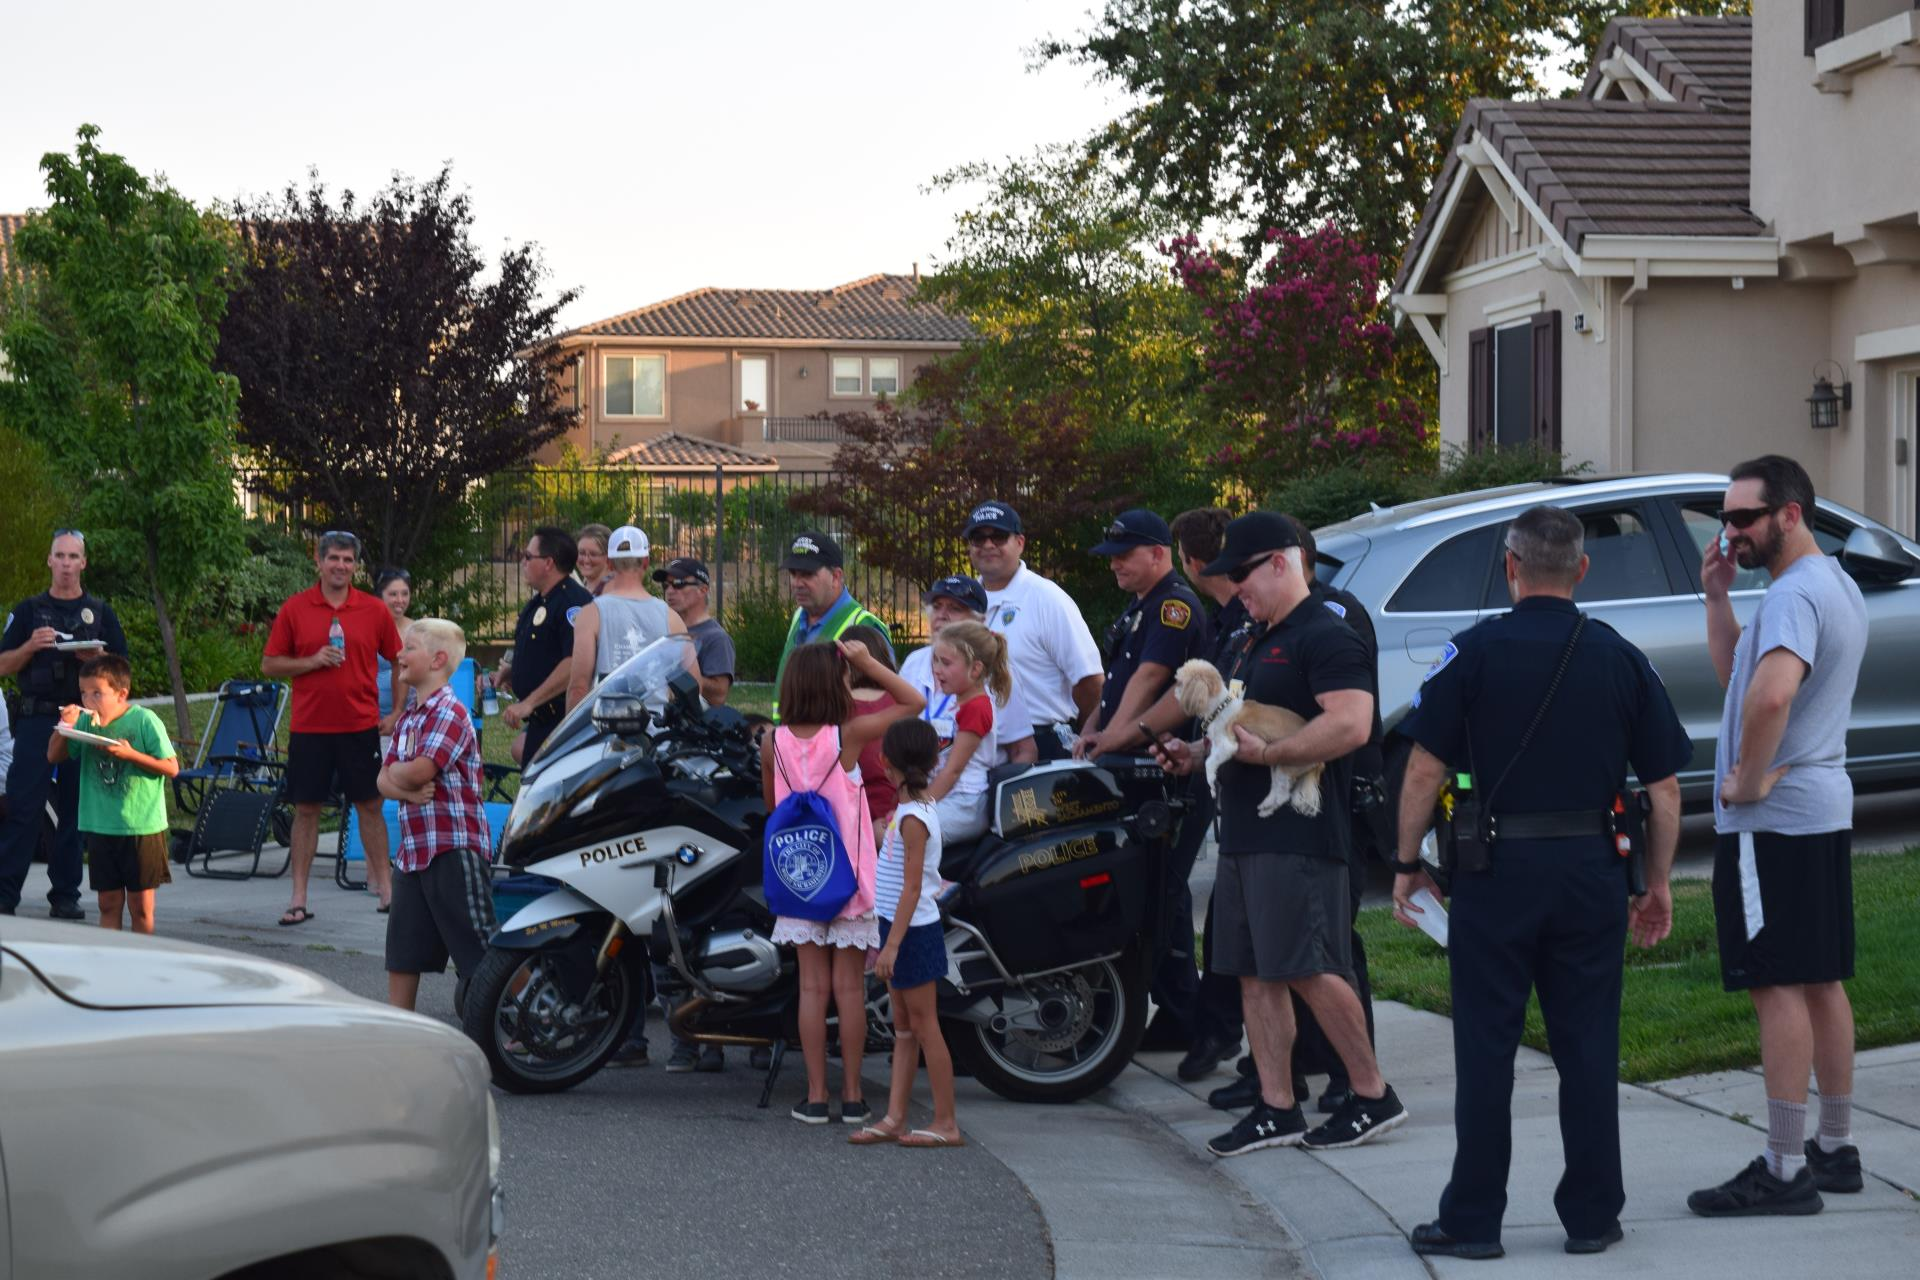 neighbors interacting with policemen, kids sitting on motorcycle at West Sacramento national night out event